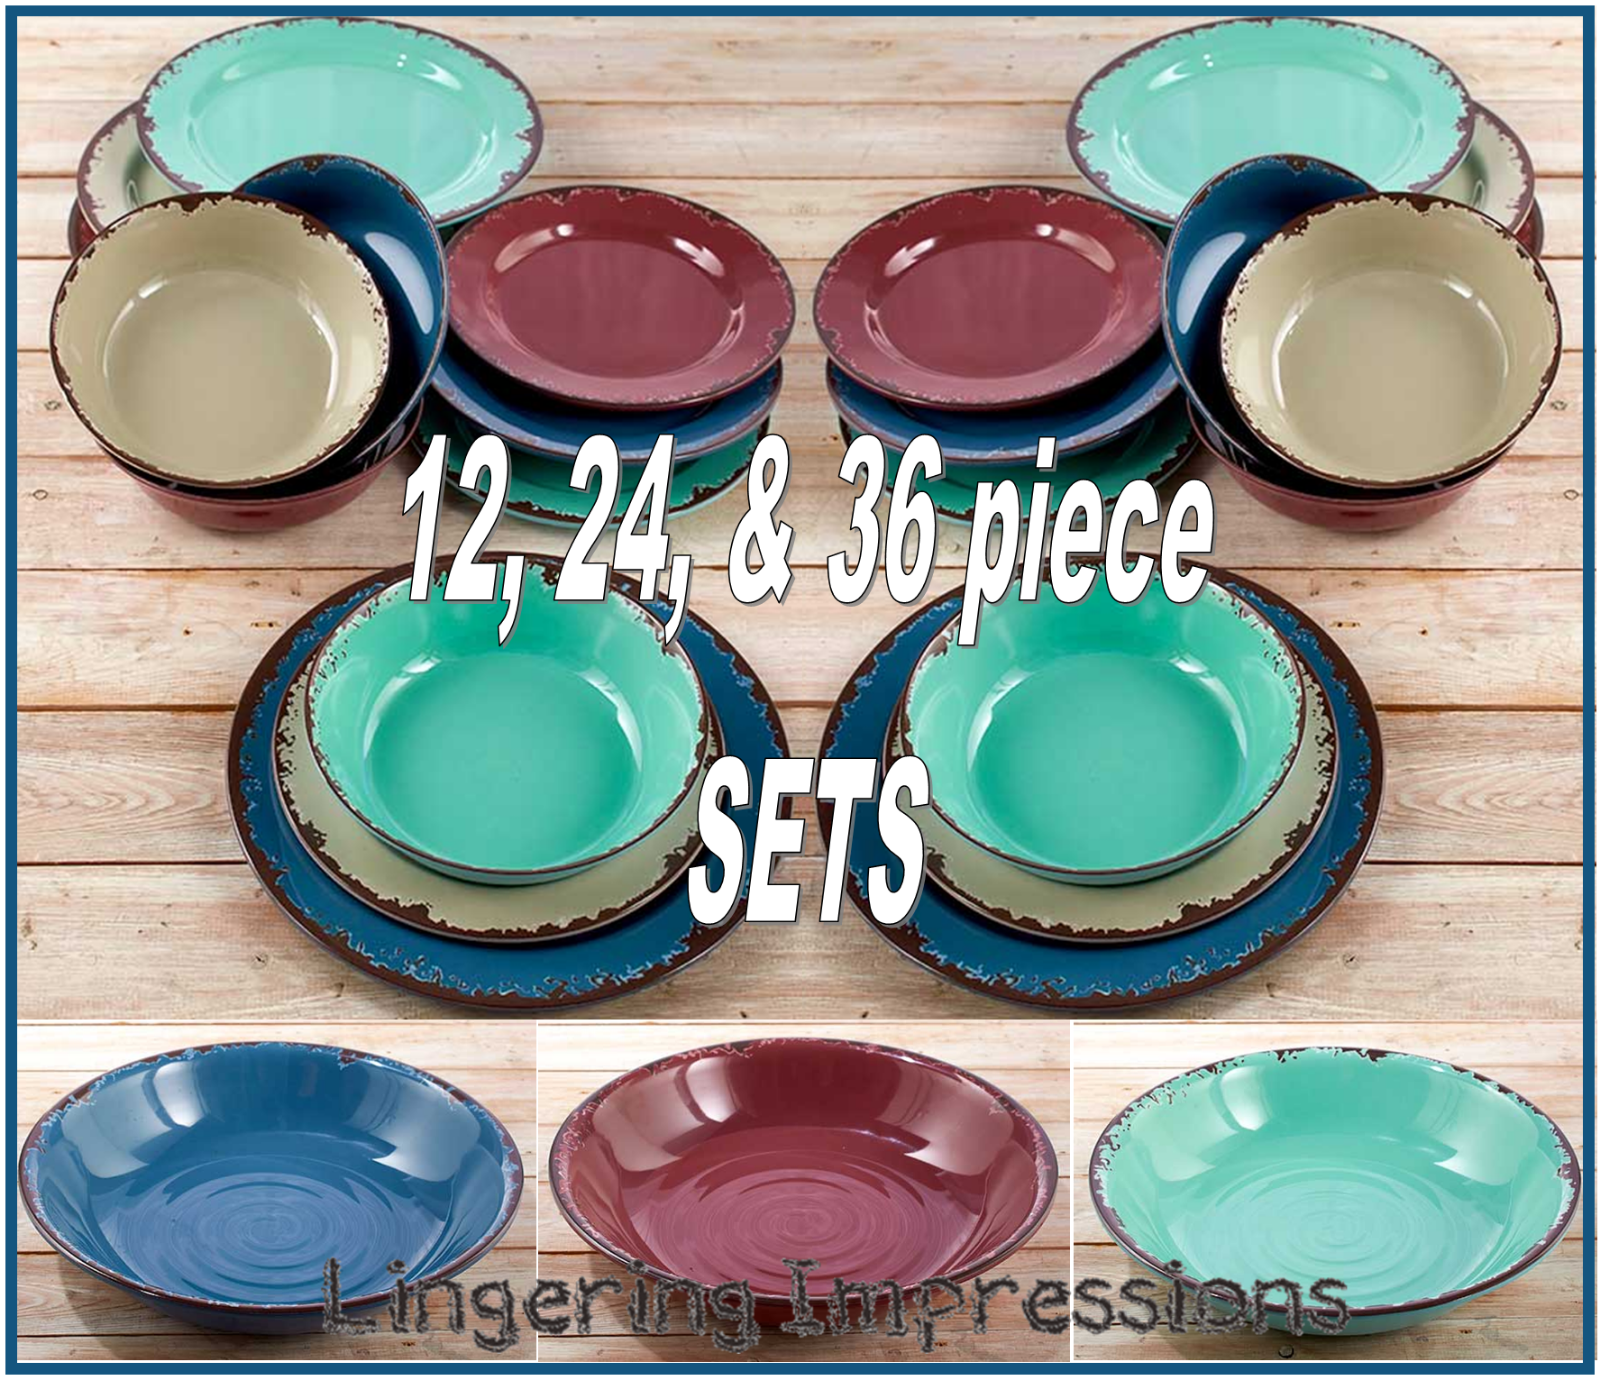 Details About Rustic Melamine Dinnerware Set Country Dishes Shatterproof Serving Bowls New With Images Melamine Dinnerware Sets Dinnerware Set Country Melamine Dinnerware